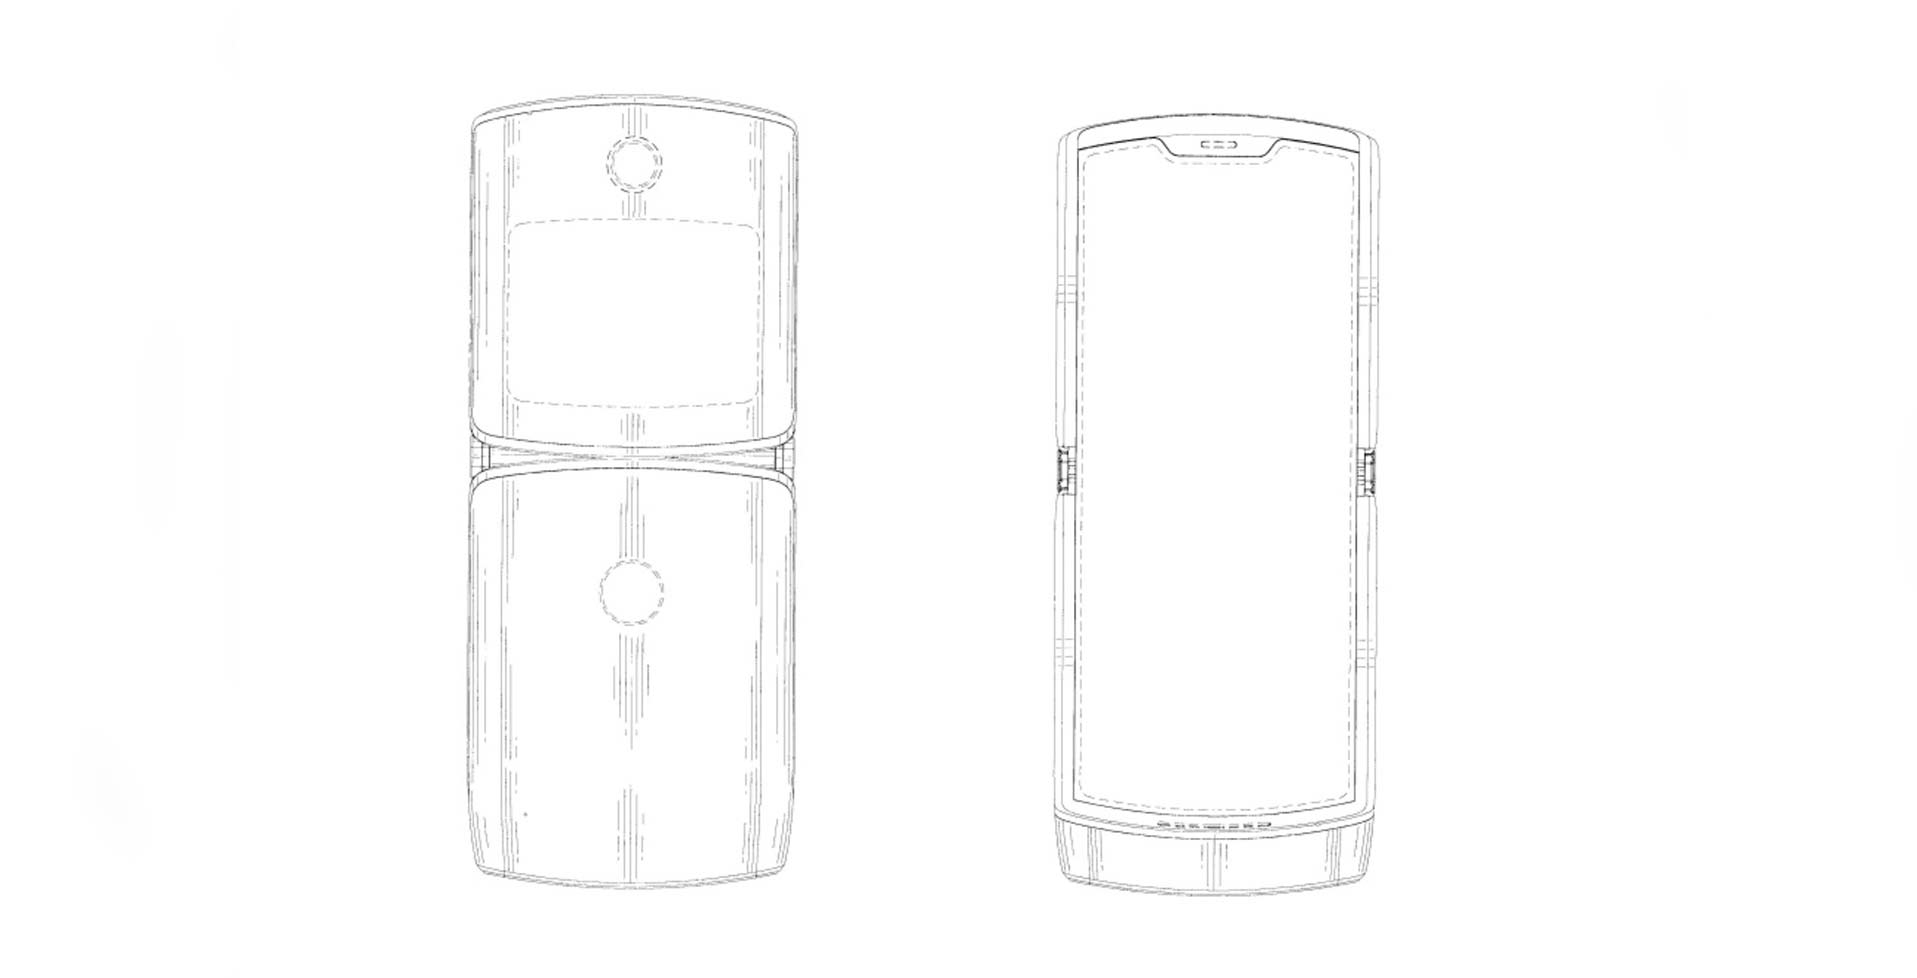 This patent might be our first look at Motorola's rumoured RAZR foldable phone